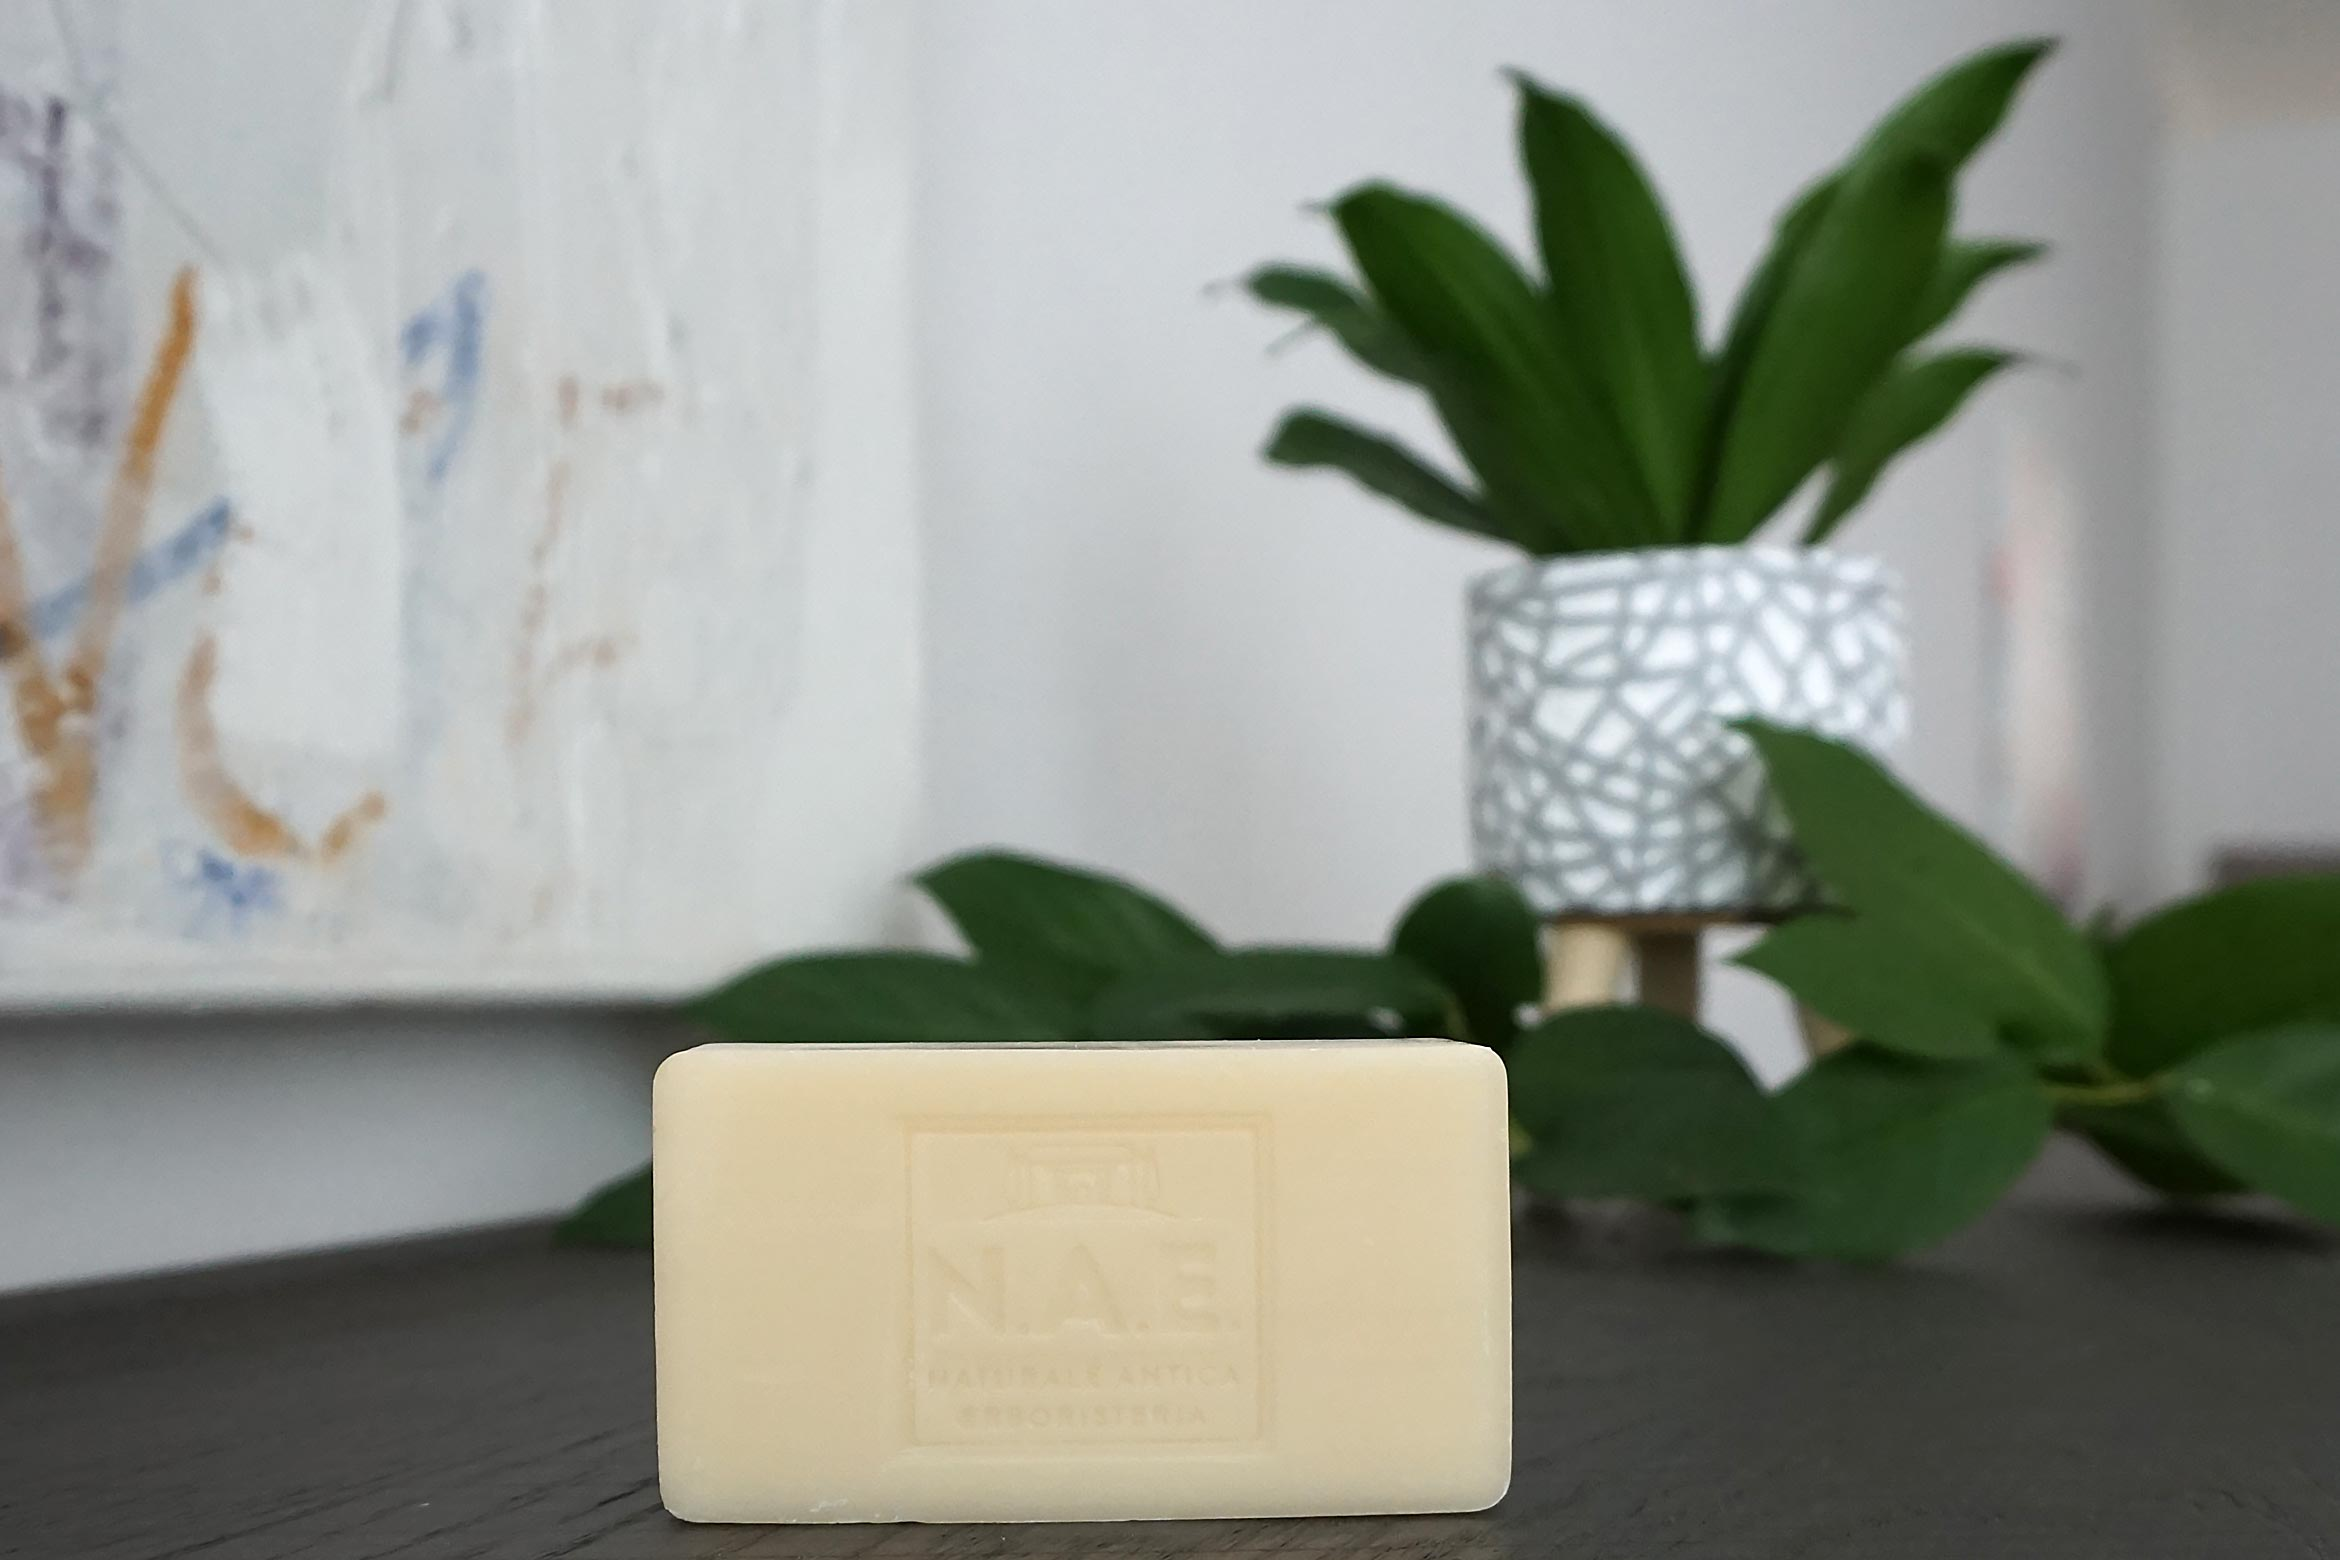 n.a.e. idratazione moisturizing body bar review-1